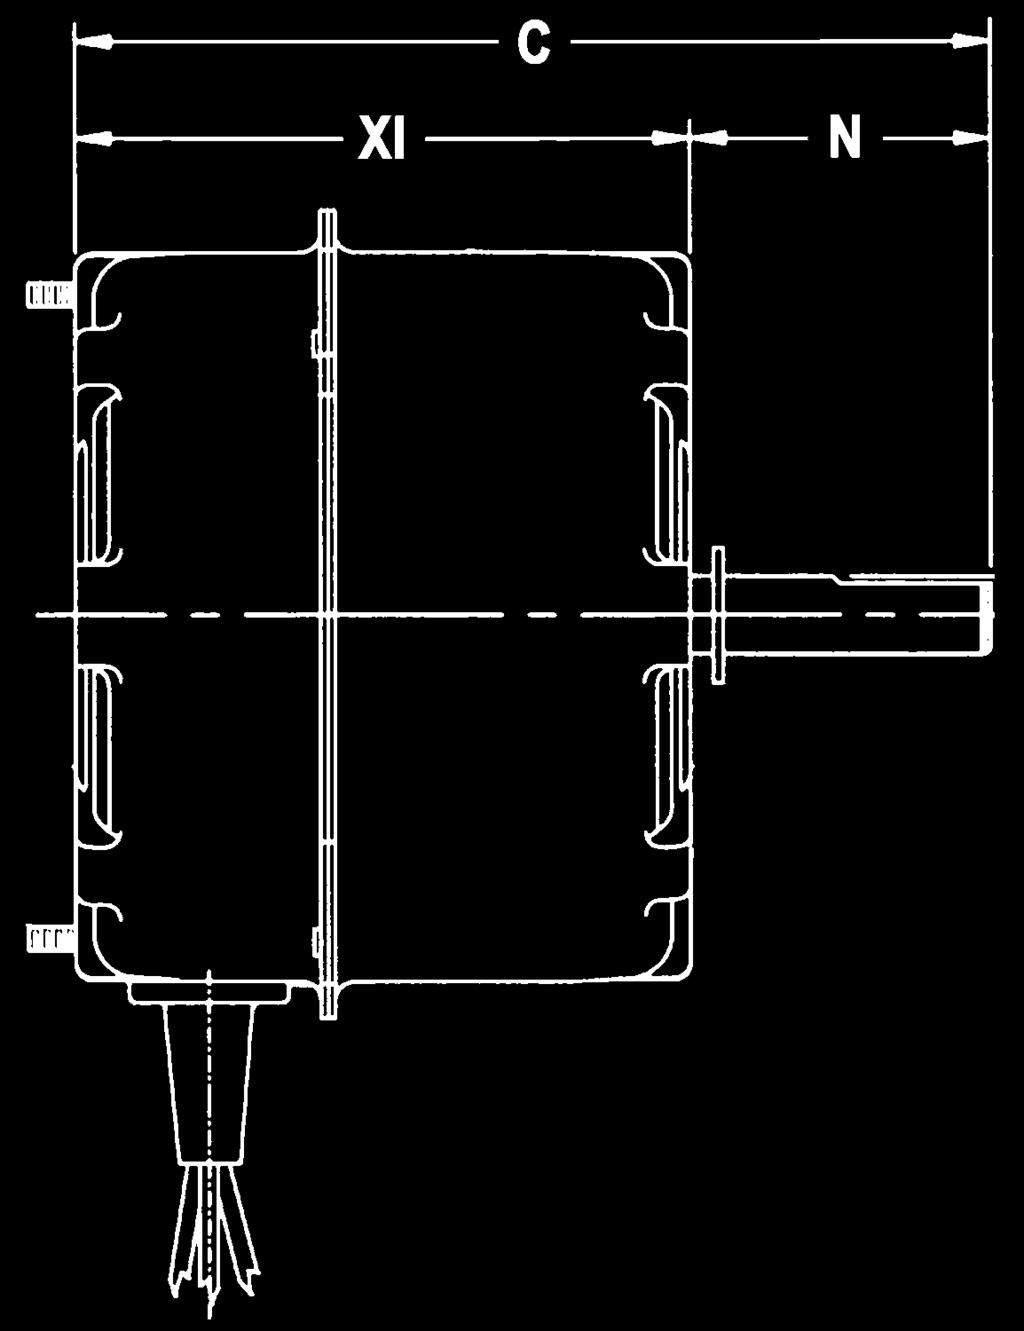 Residential And Mercial Pdf. Bolt Circle Designed For Use With 370v Capacitor Note H35 Open Air Over H36. Wiring. 5kcp39gg Capacitors Wire Diagram At Scoala.co